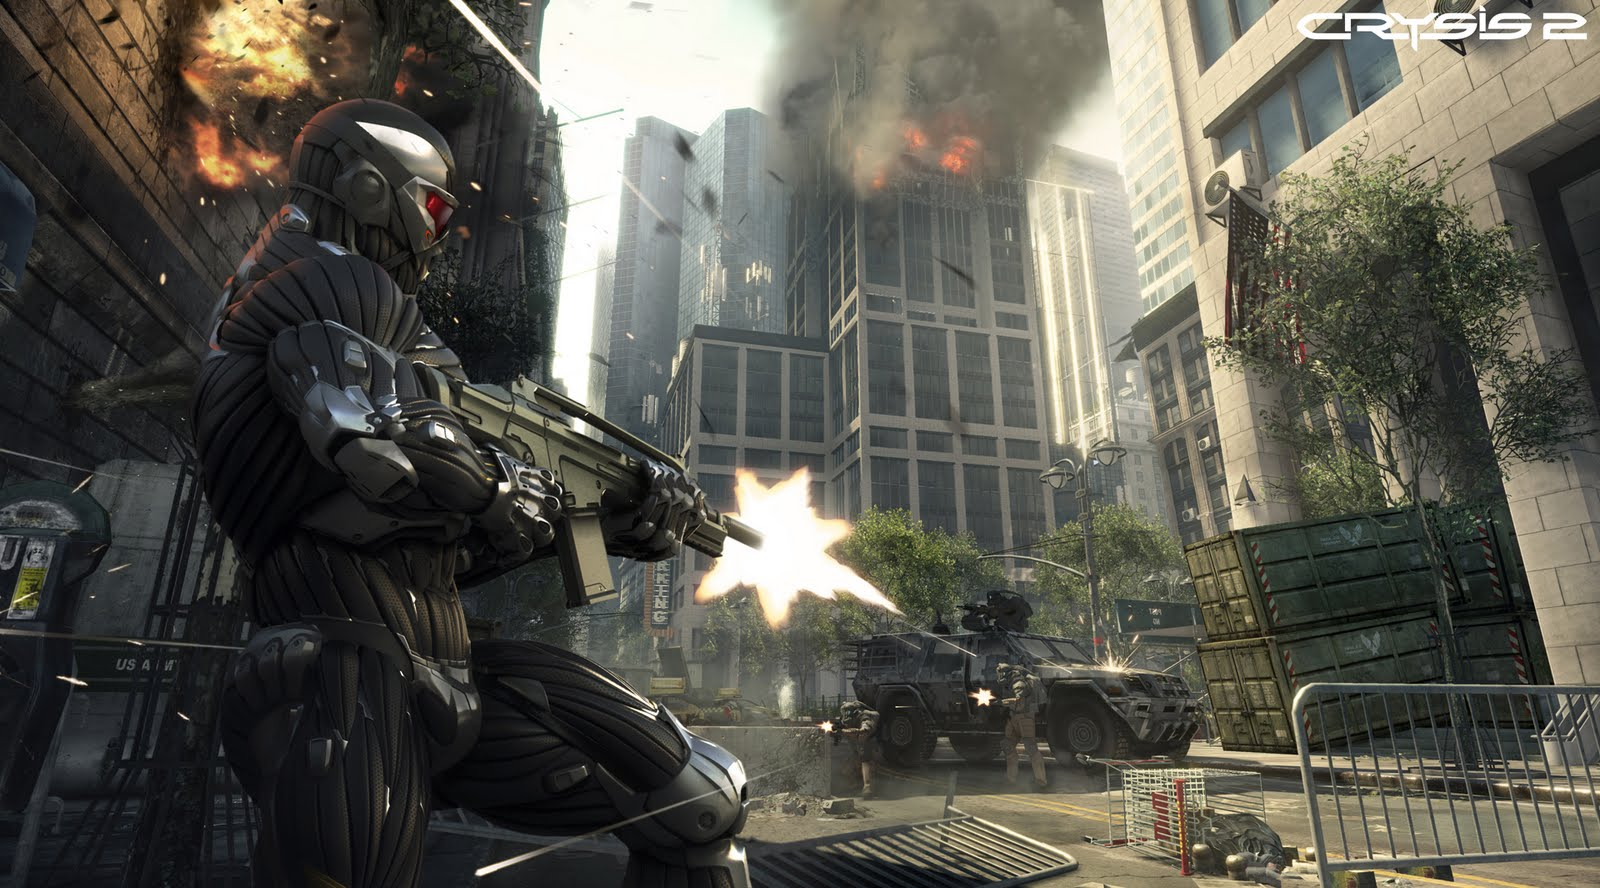 wallpaper city crysis 2 game high definition computer